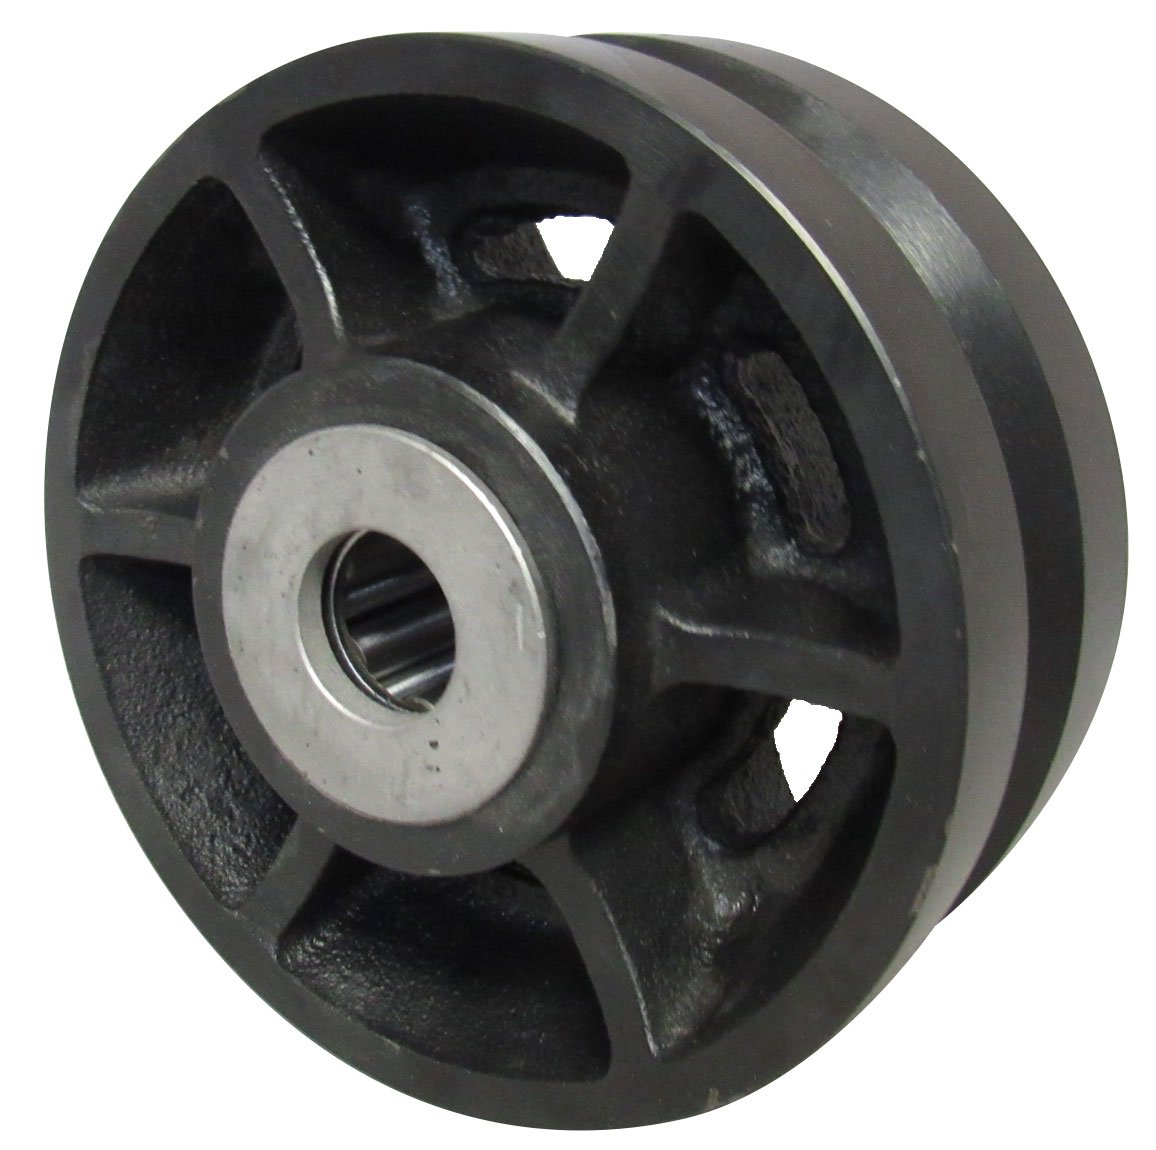 RWM Casters VIR-0625-12 6'' Diameter X 2-1/2'' Width Cast Iron V-Groove Wheel with Straight Roller Bearing, 2500 lbs Capacity